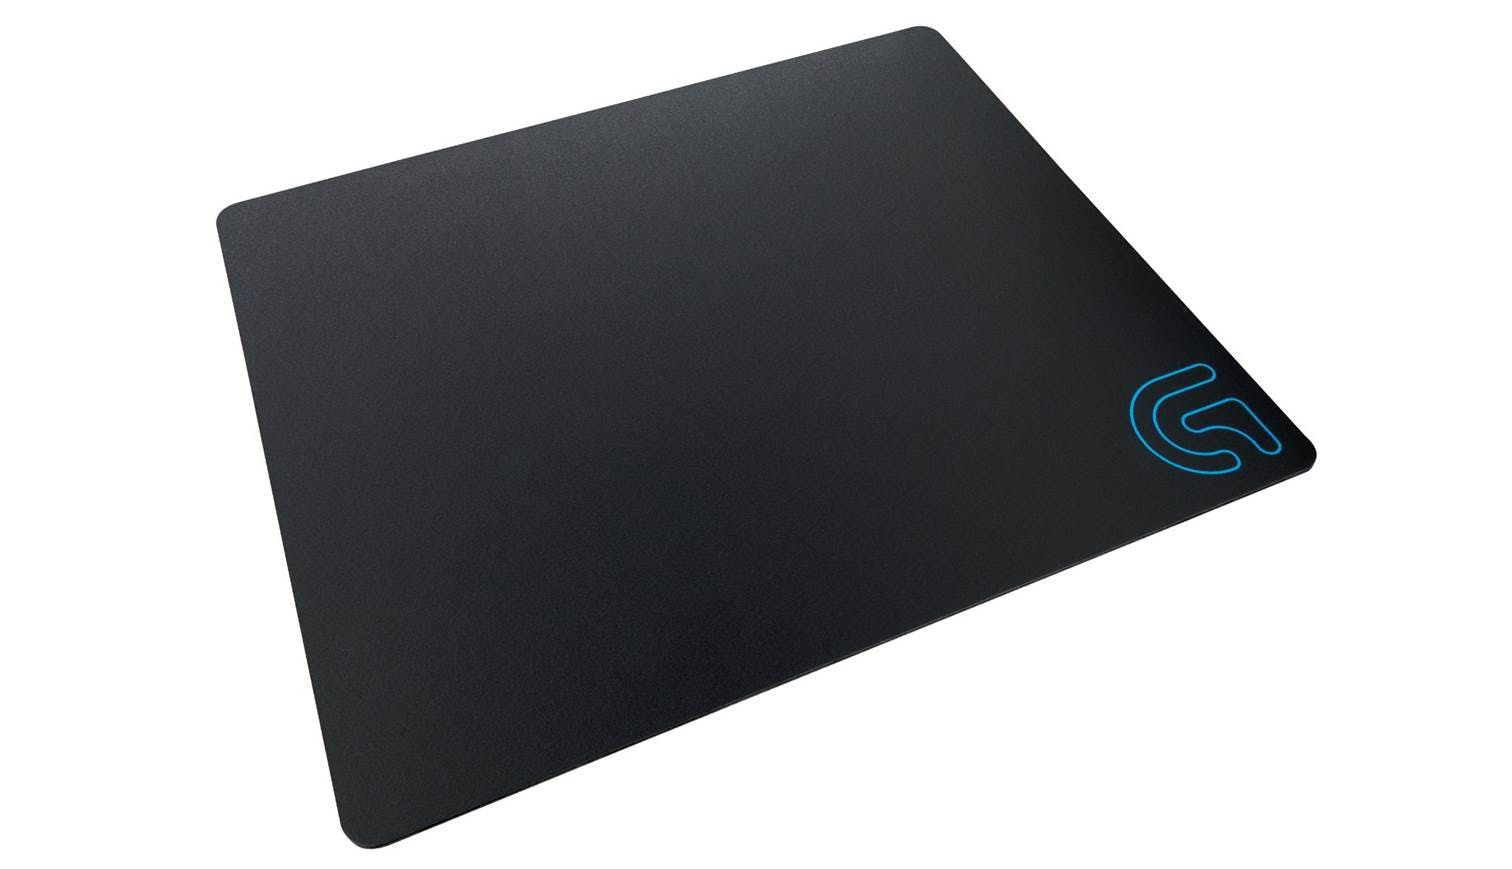 Logitech G440 Hard Gaming Mouse Pad Harvey Norman Singapore Microsoft